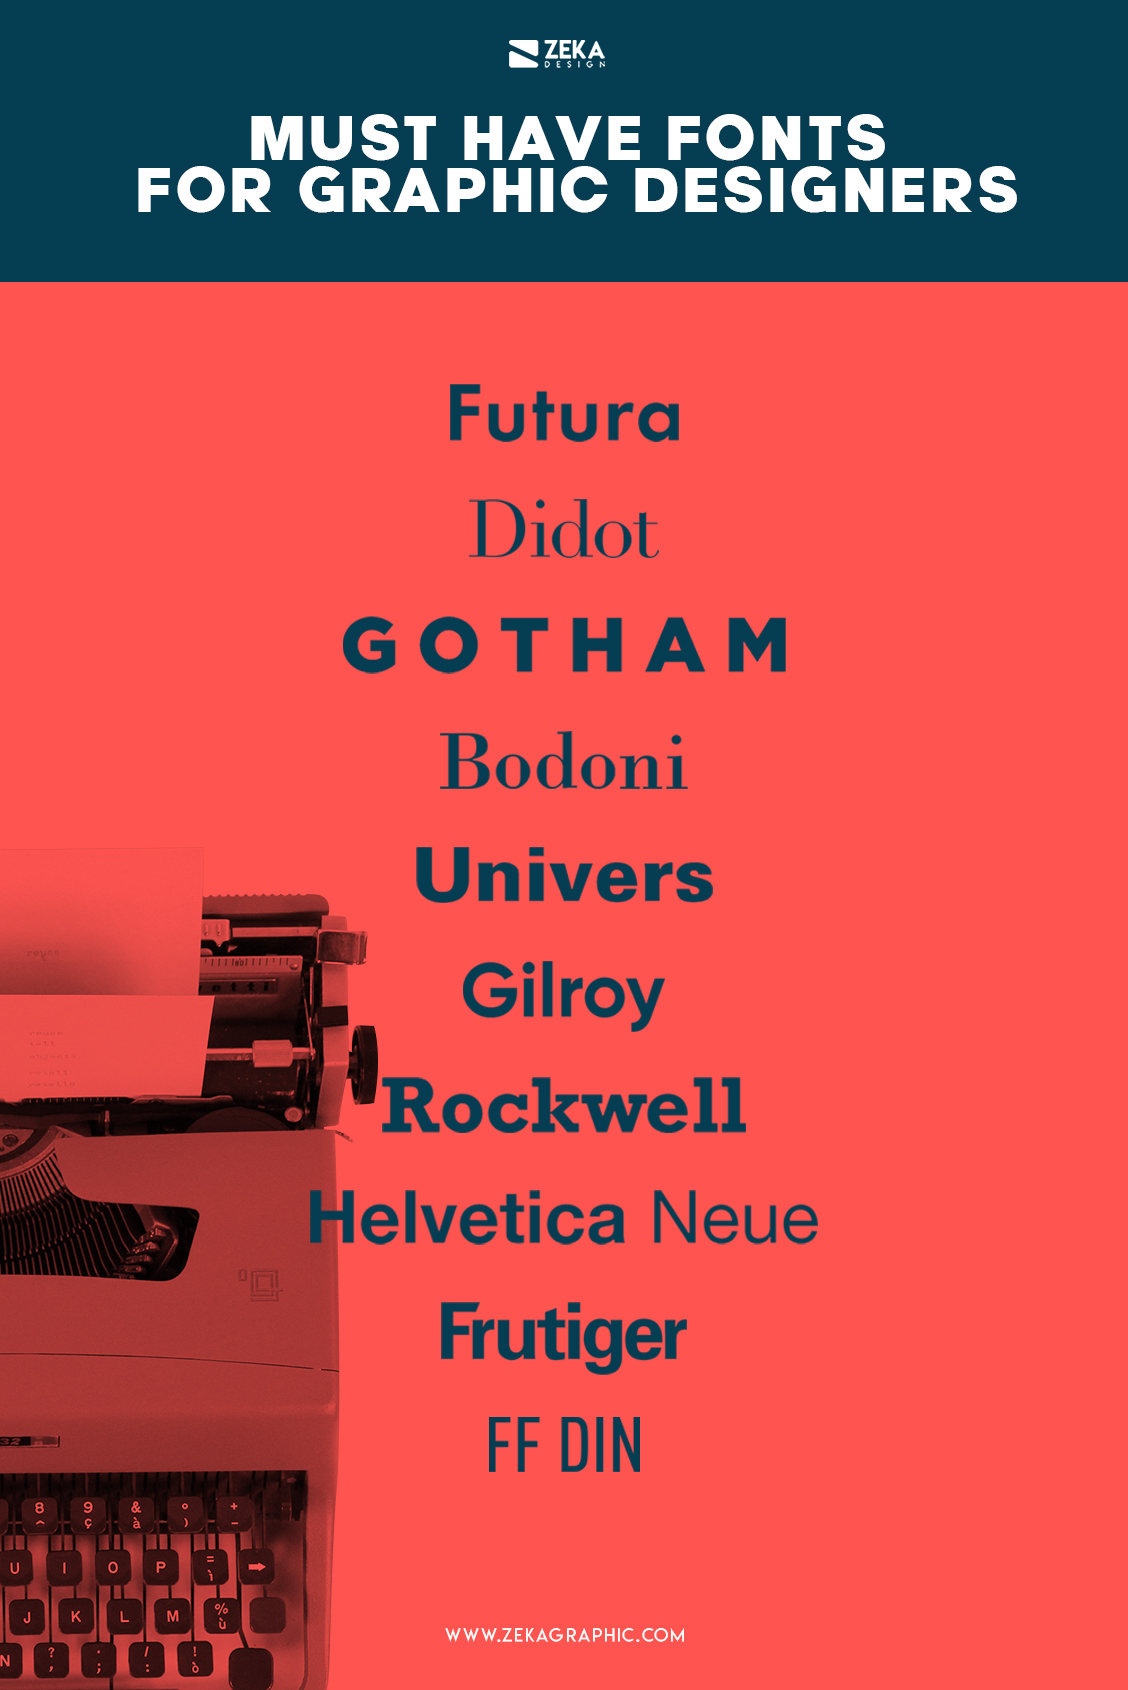 Must Have Fonts for Graphic Designer Infography